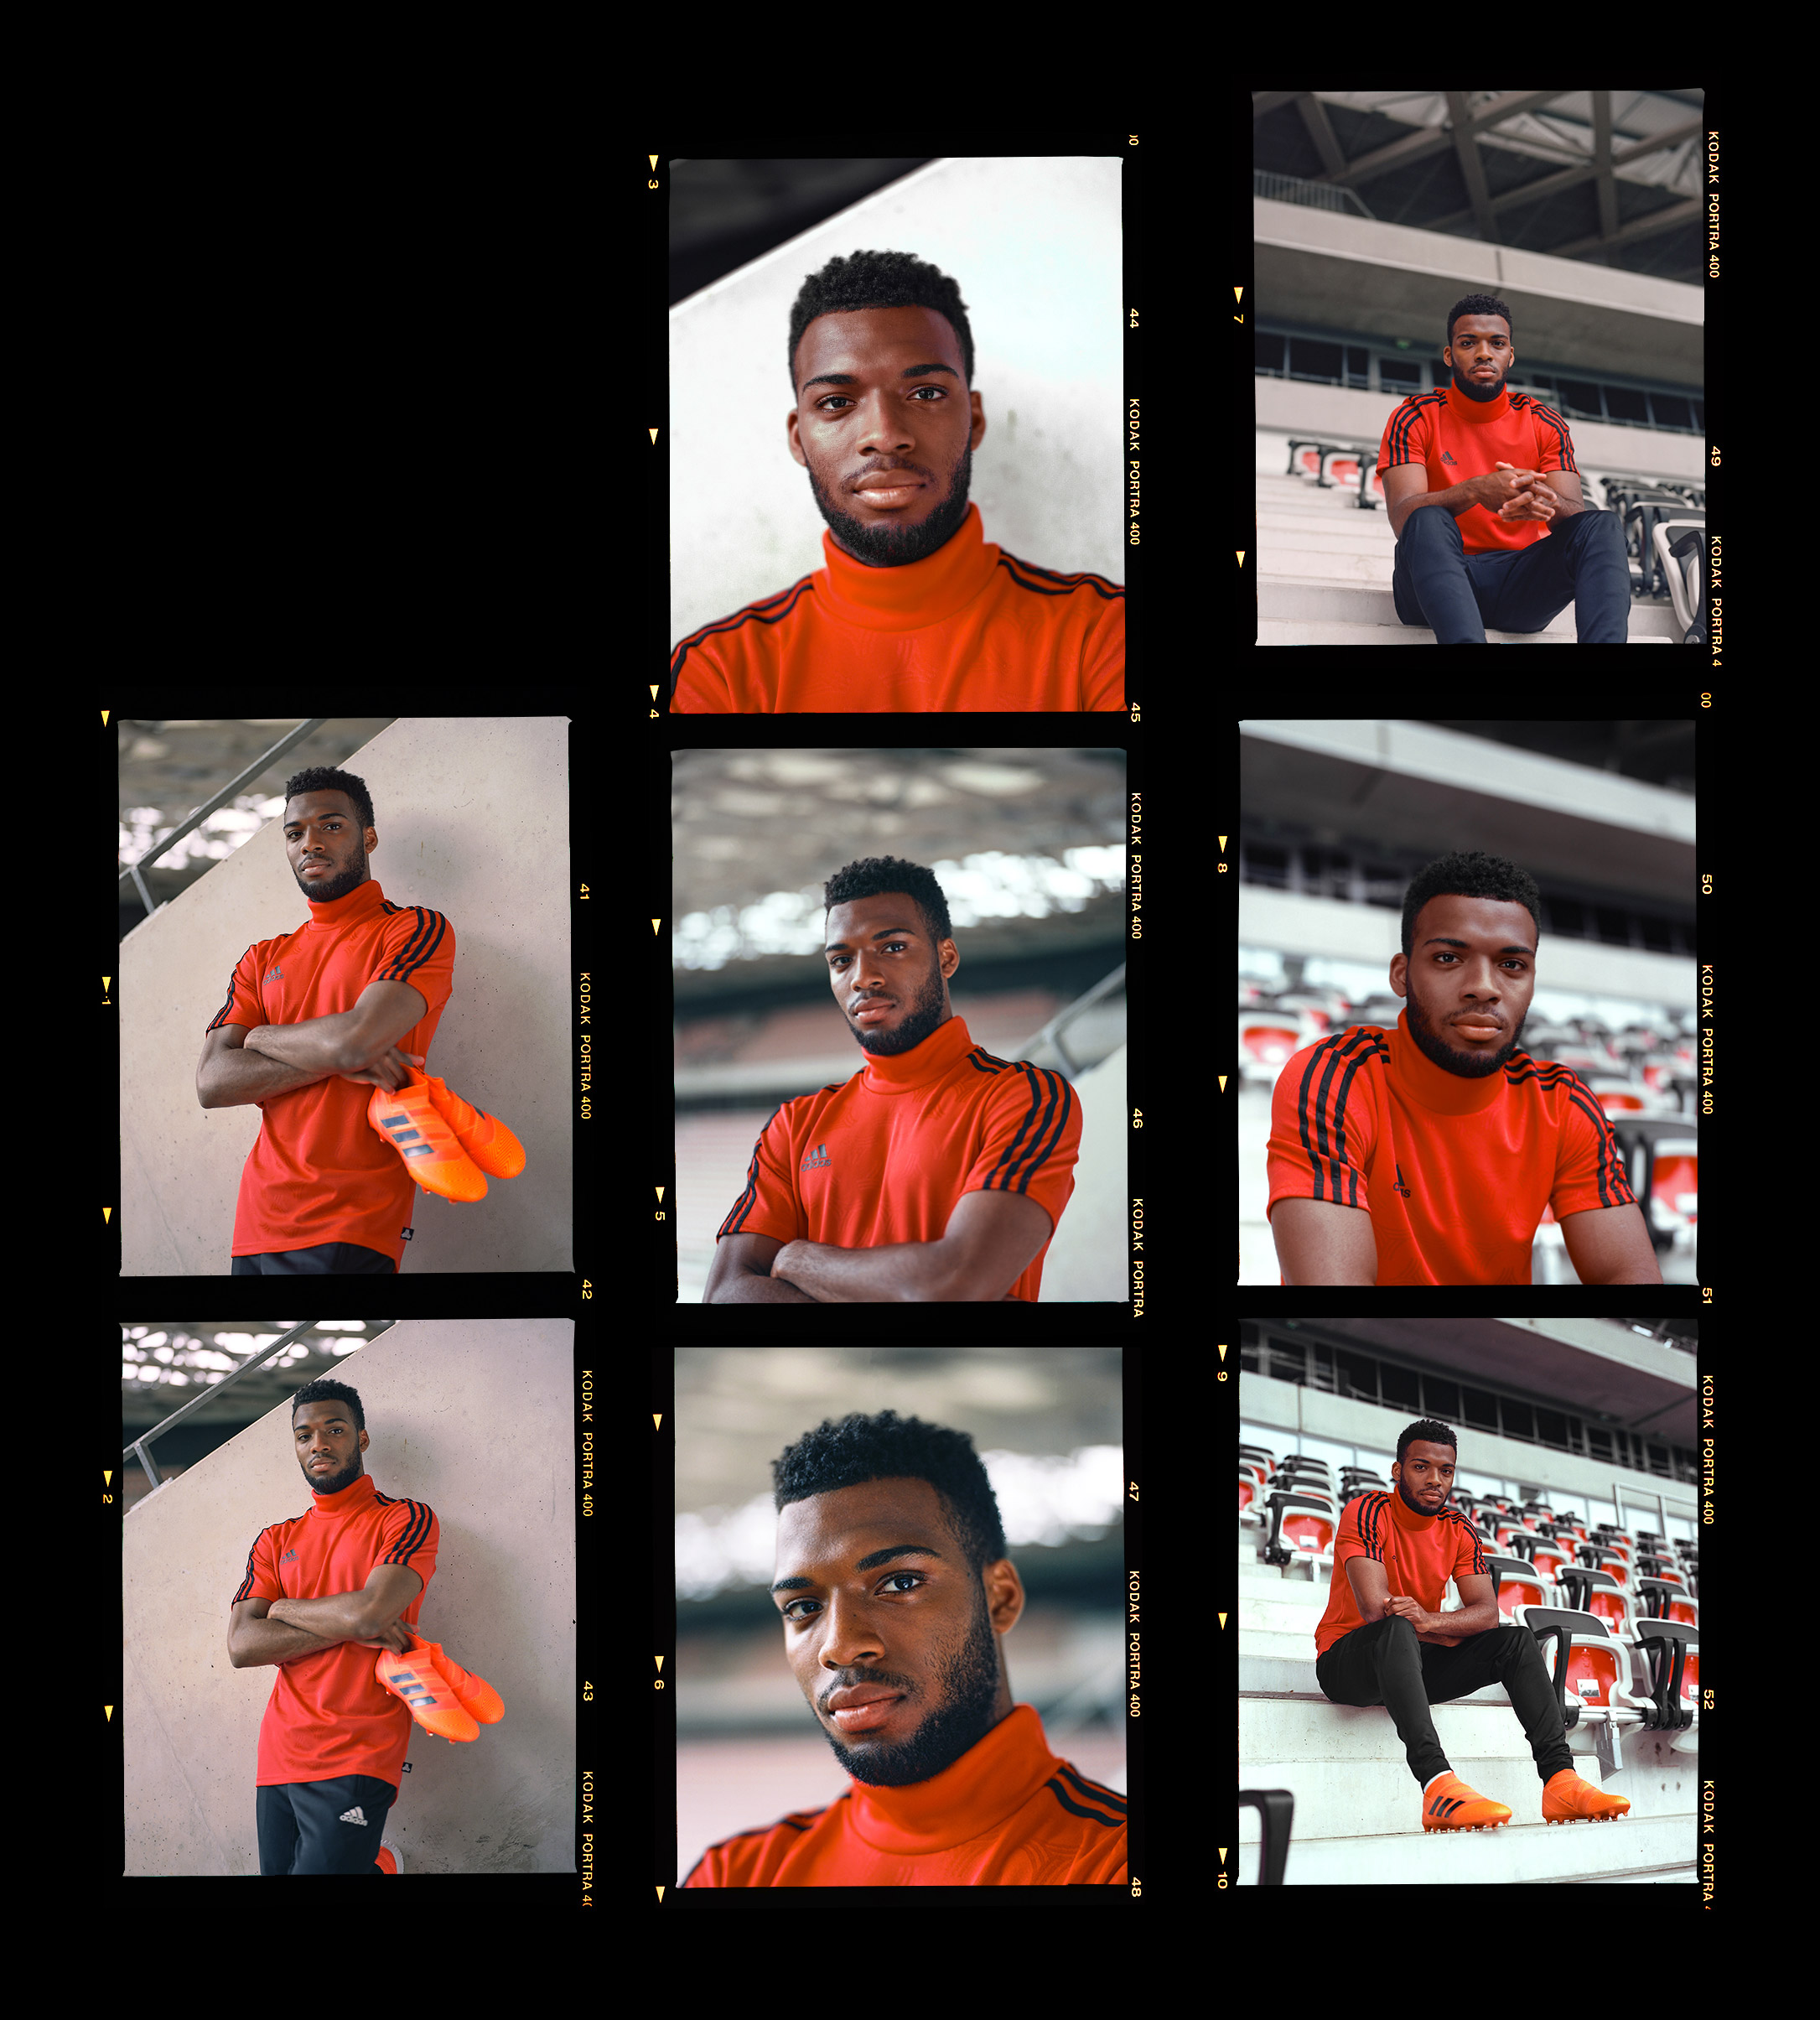 contact-sheet3goodone.jpg